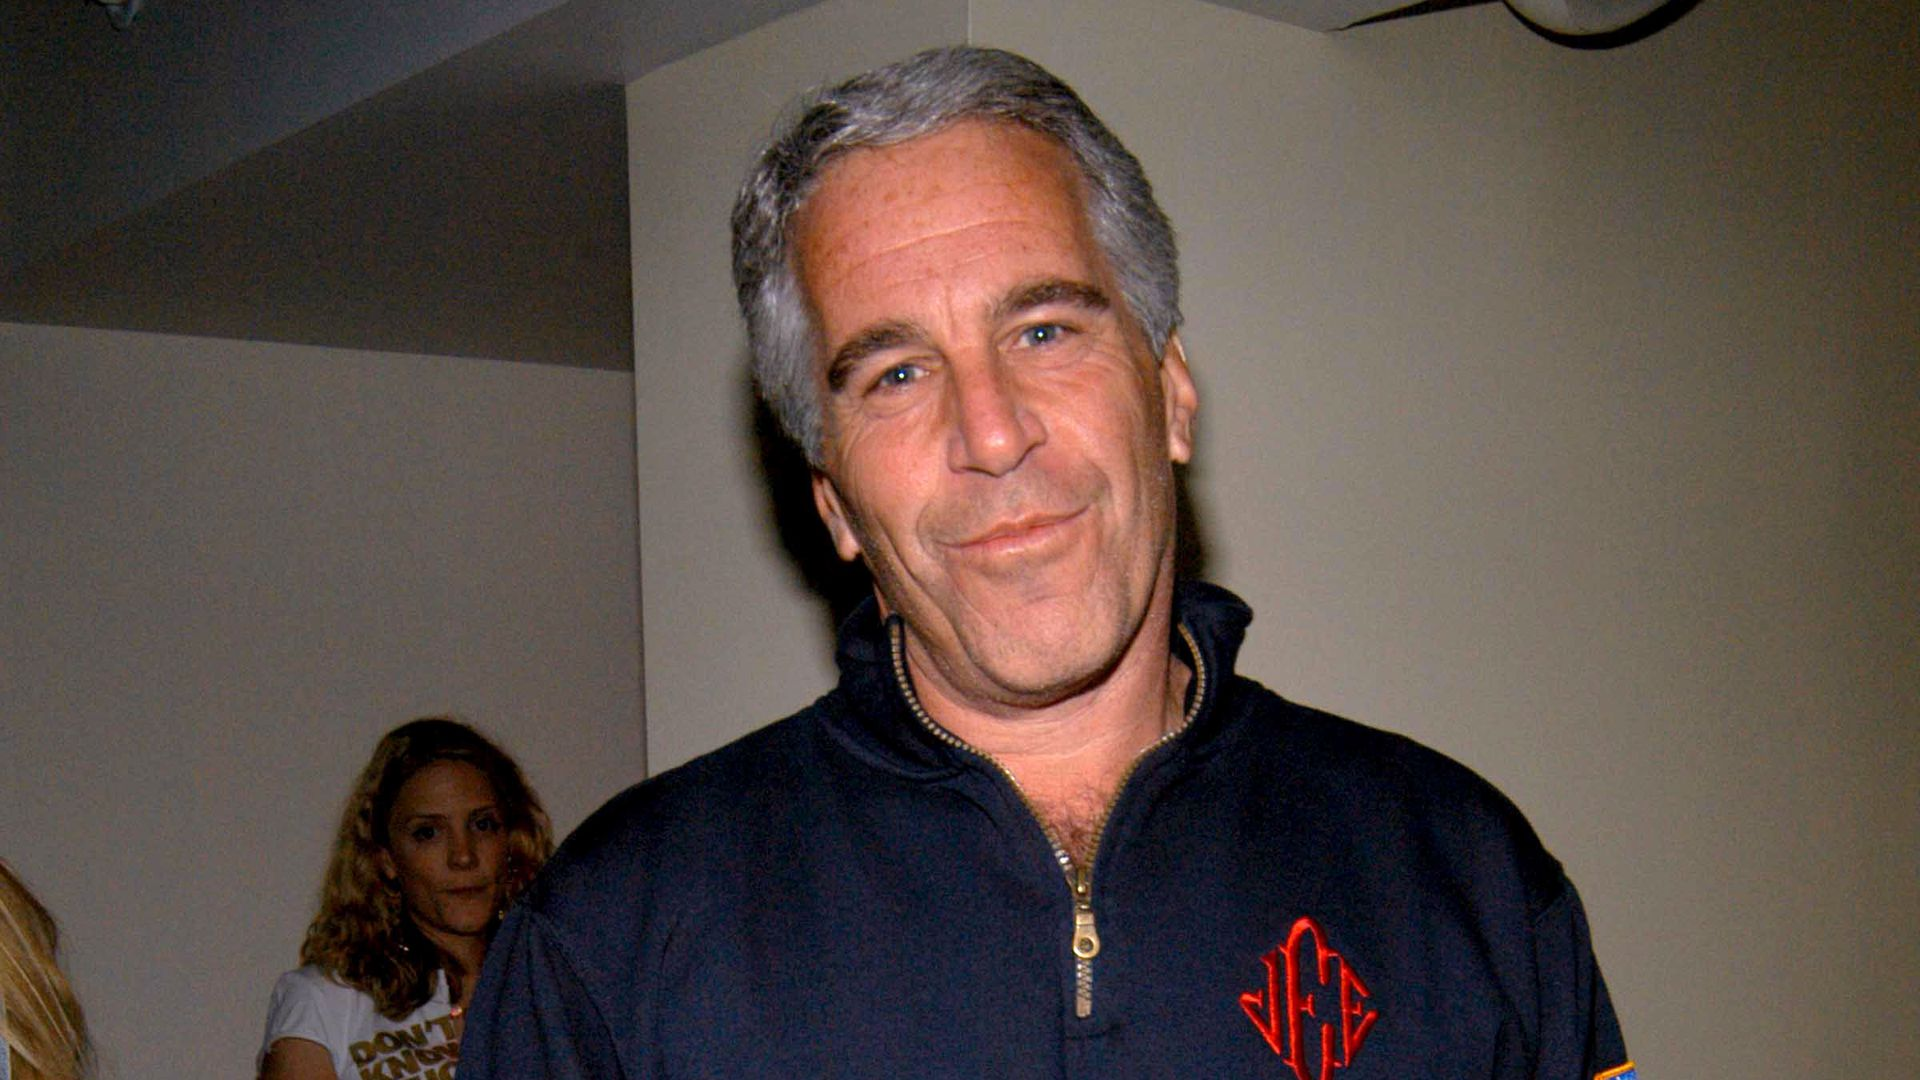 In this image, Epstein stands and looks at the camera while wearing a sweater pullover